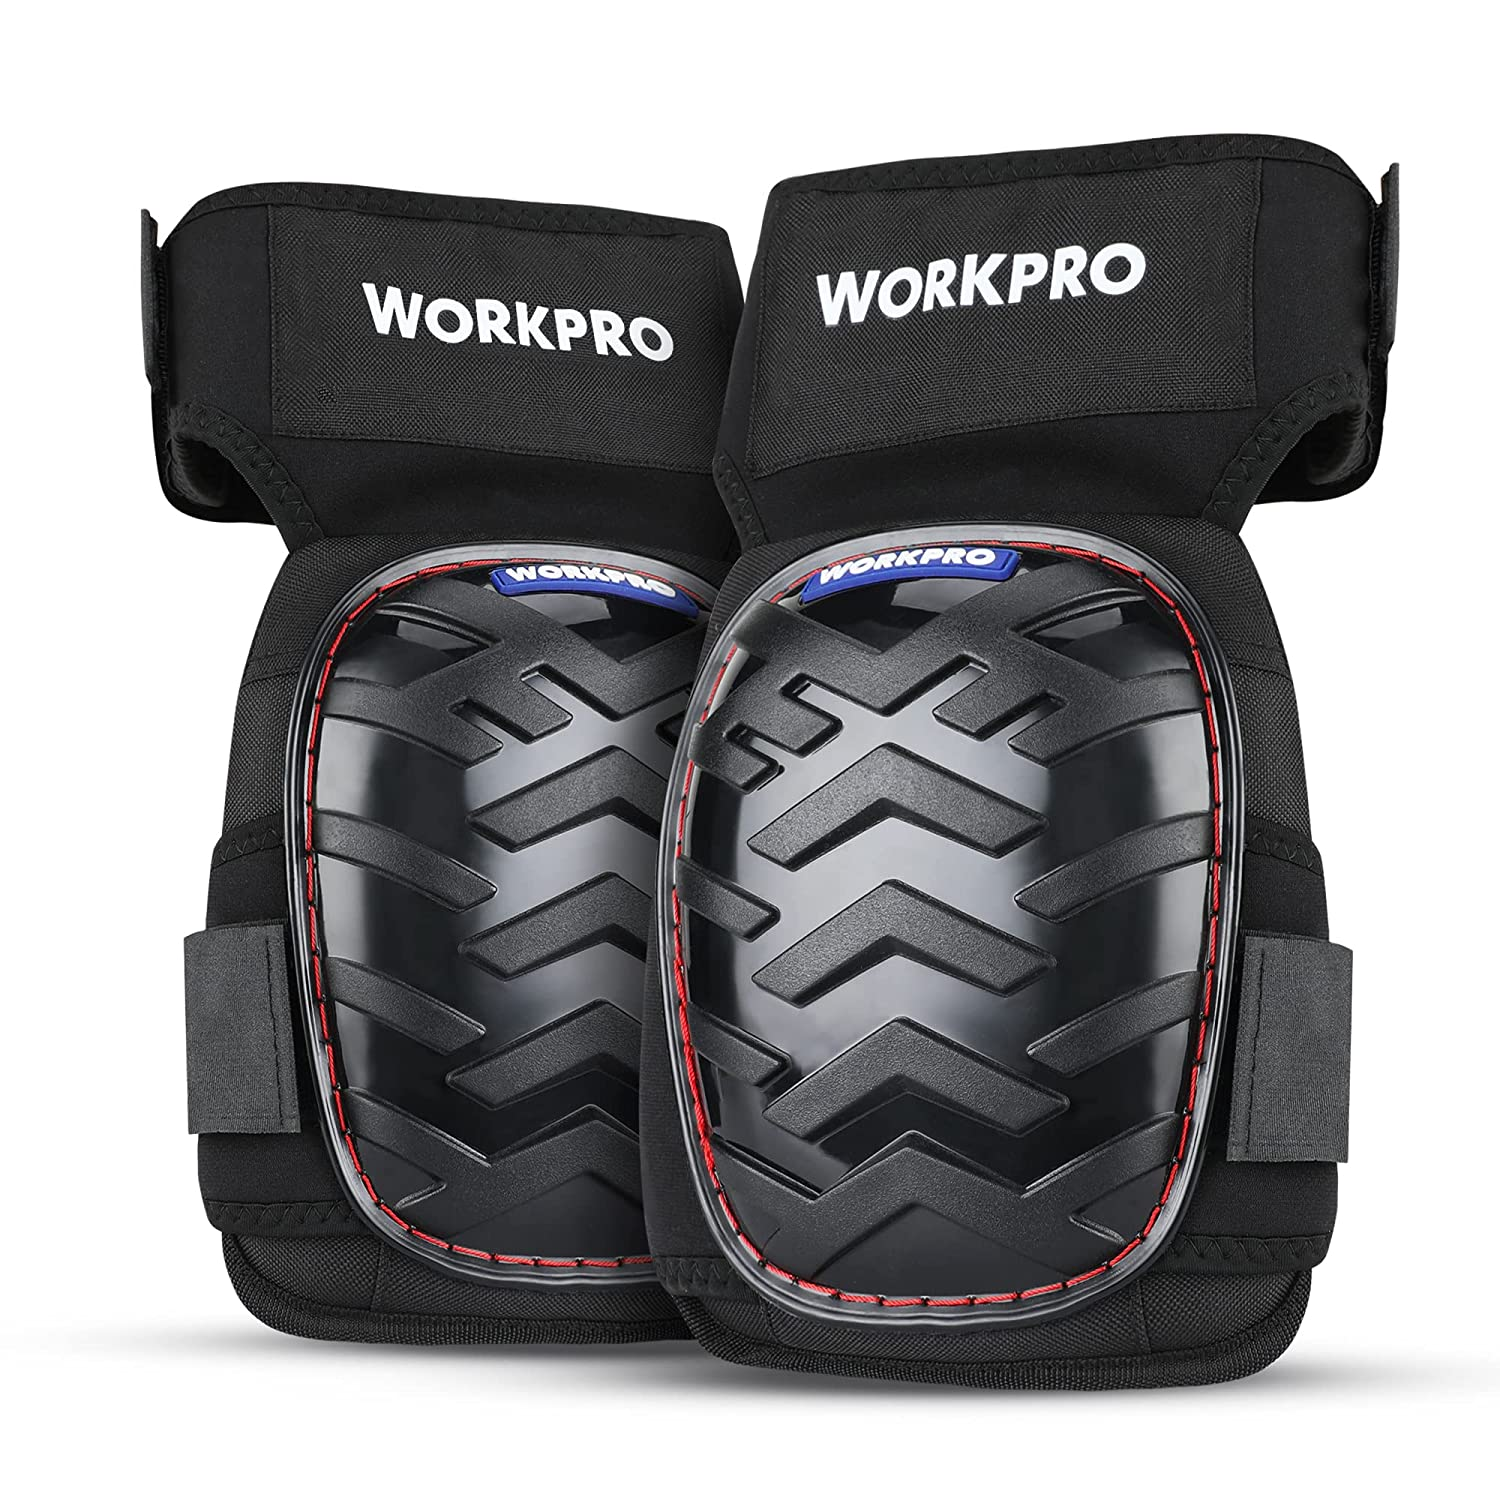 WORKPRO Gel Knee Pads with Anti-Slip Straps, Professional Kneepads for Work,Construction and Garden, Ergonomic Foam Cushion for Men and Women Safe Knees